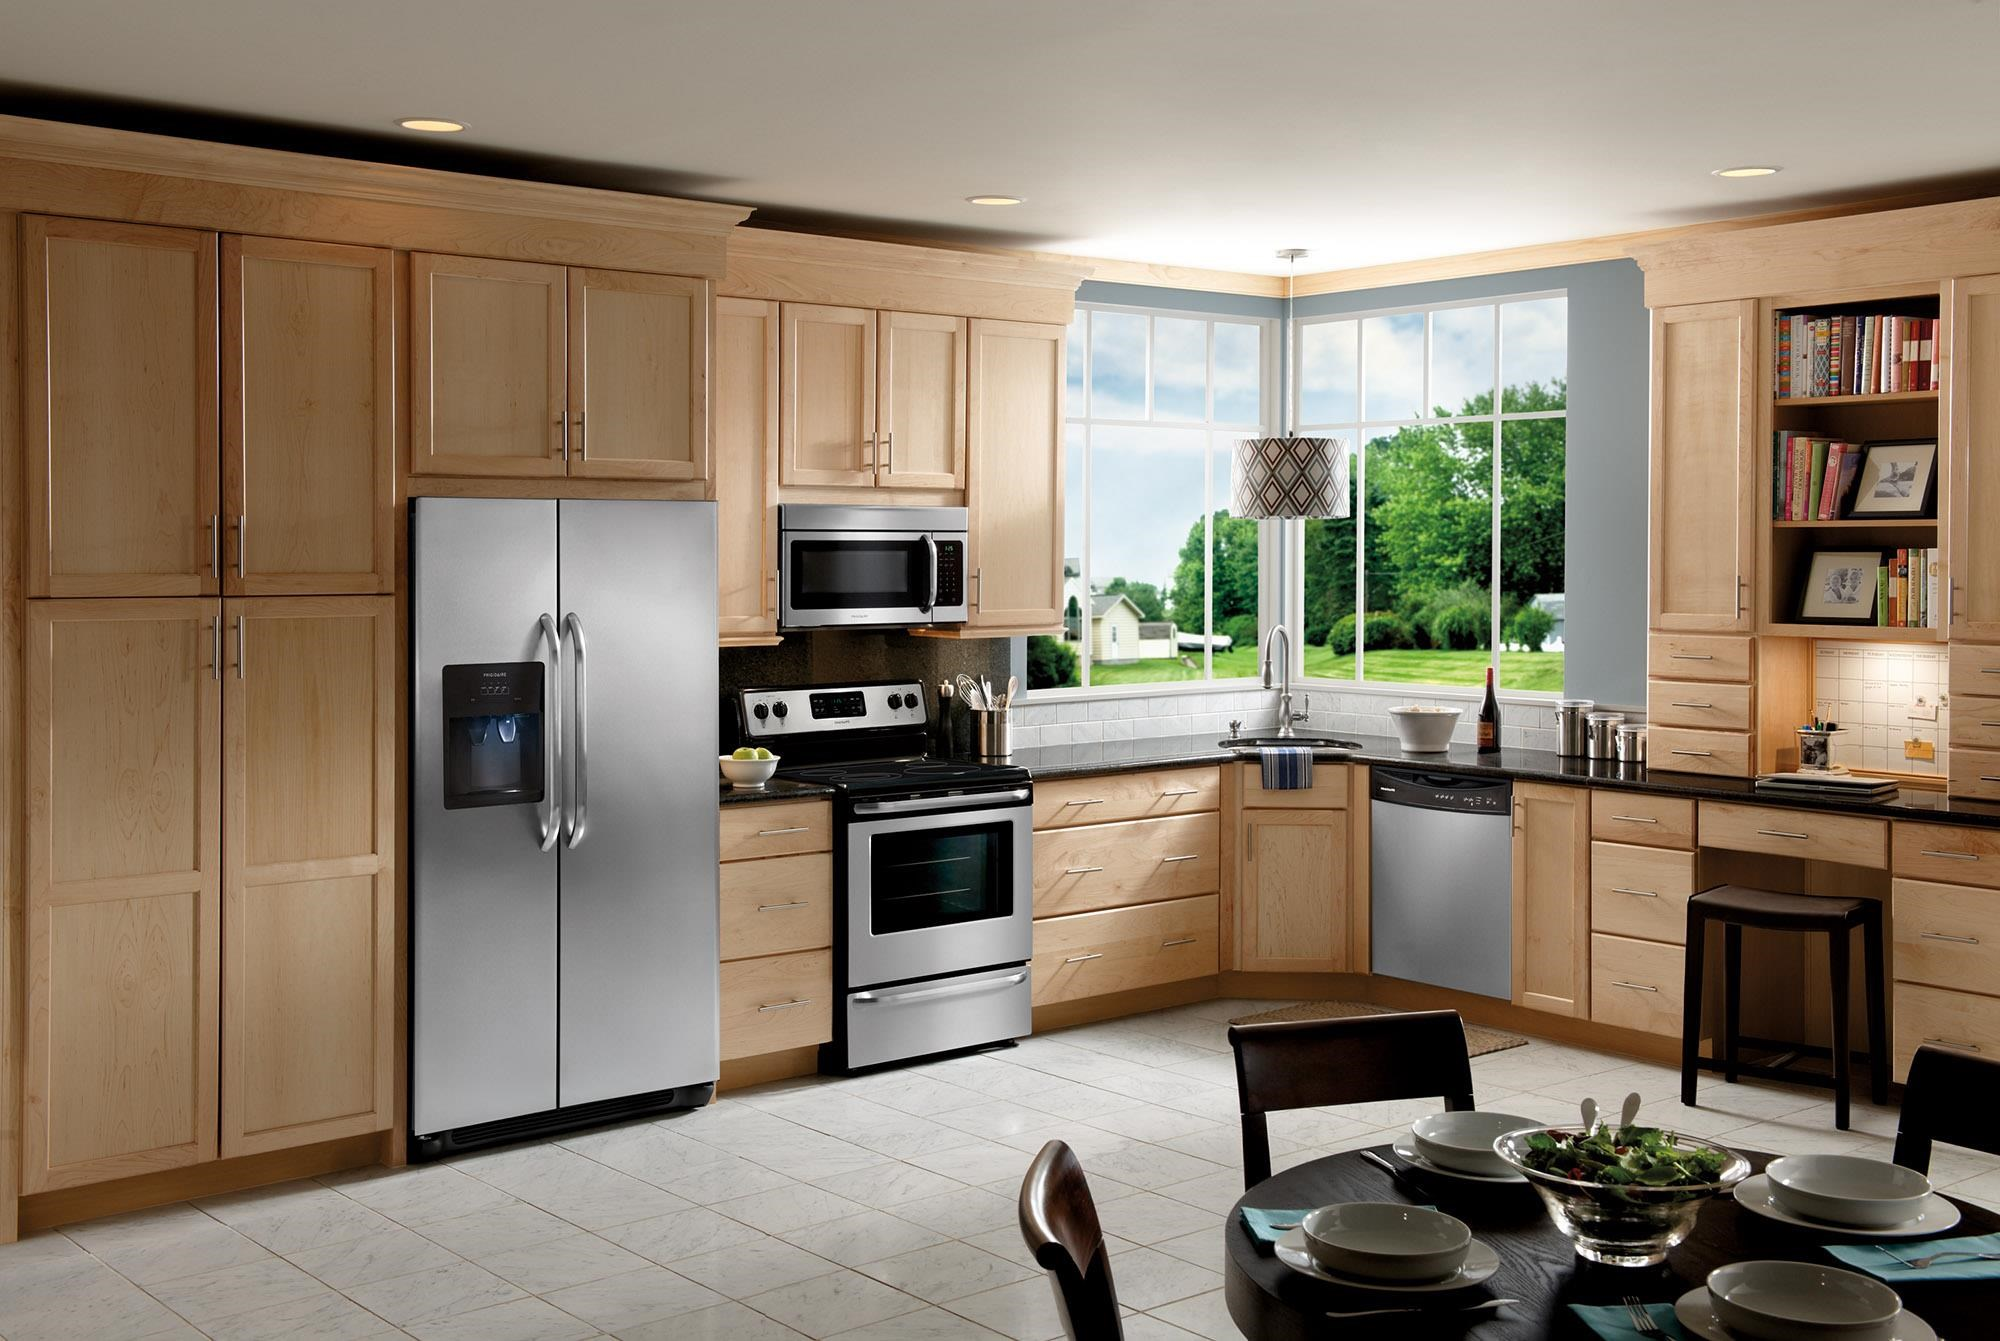 frigidaire kitchen package home depot door hardware 4 piece stainless steel boulevard furnishings appliance group